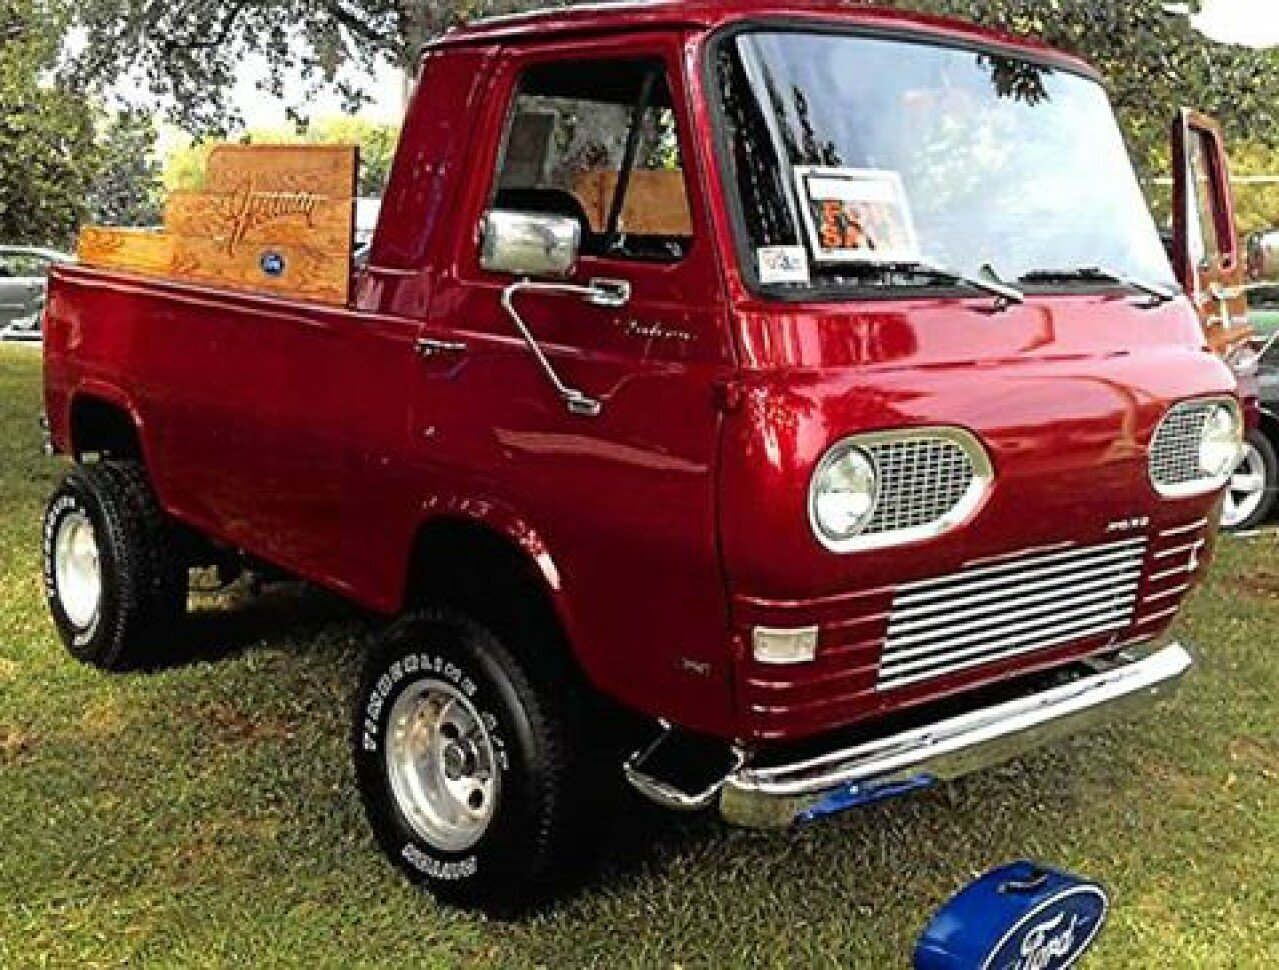 Car Auctions In Pa >> 1964 Ford Econoline Pickup for sale near Wilkes Barre, Pennsylvania 18709 - Classics on Autotrader